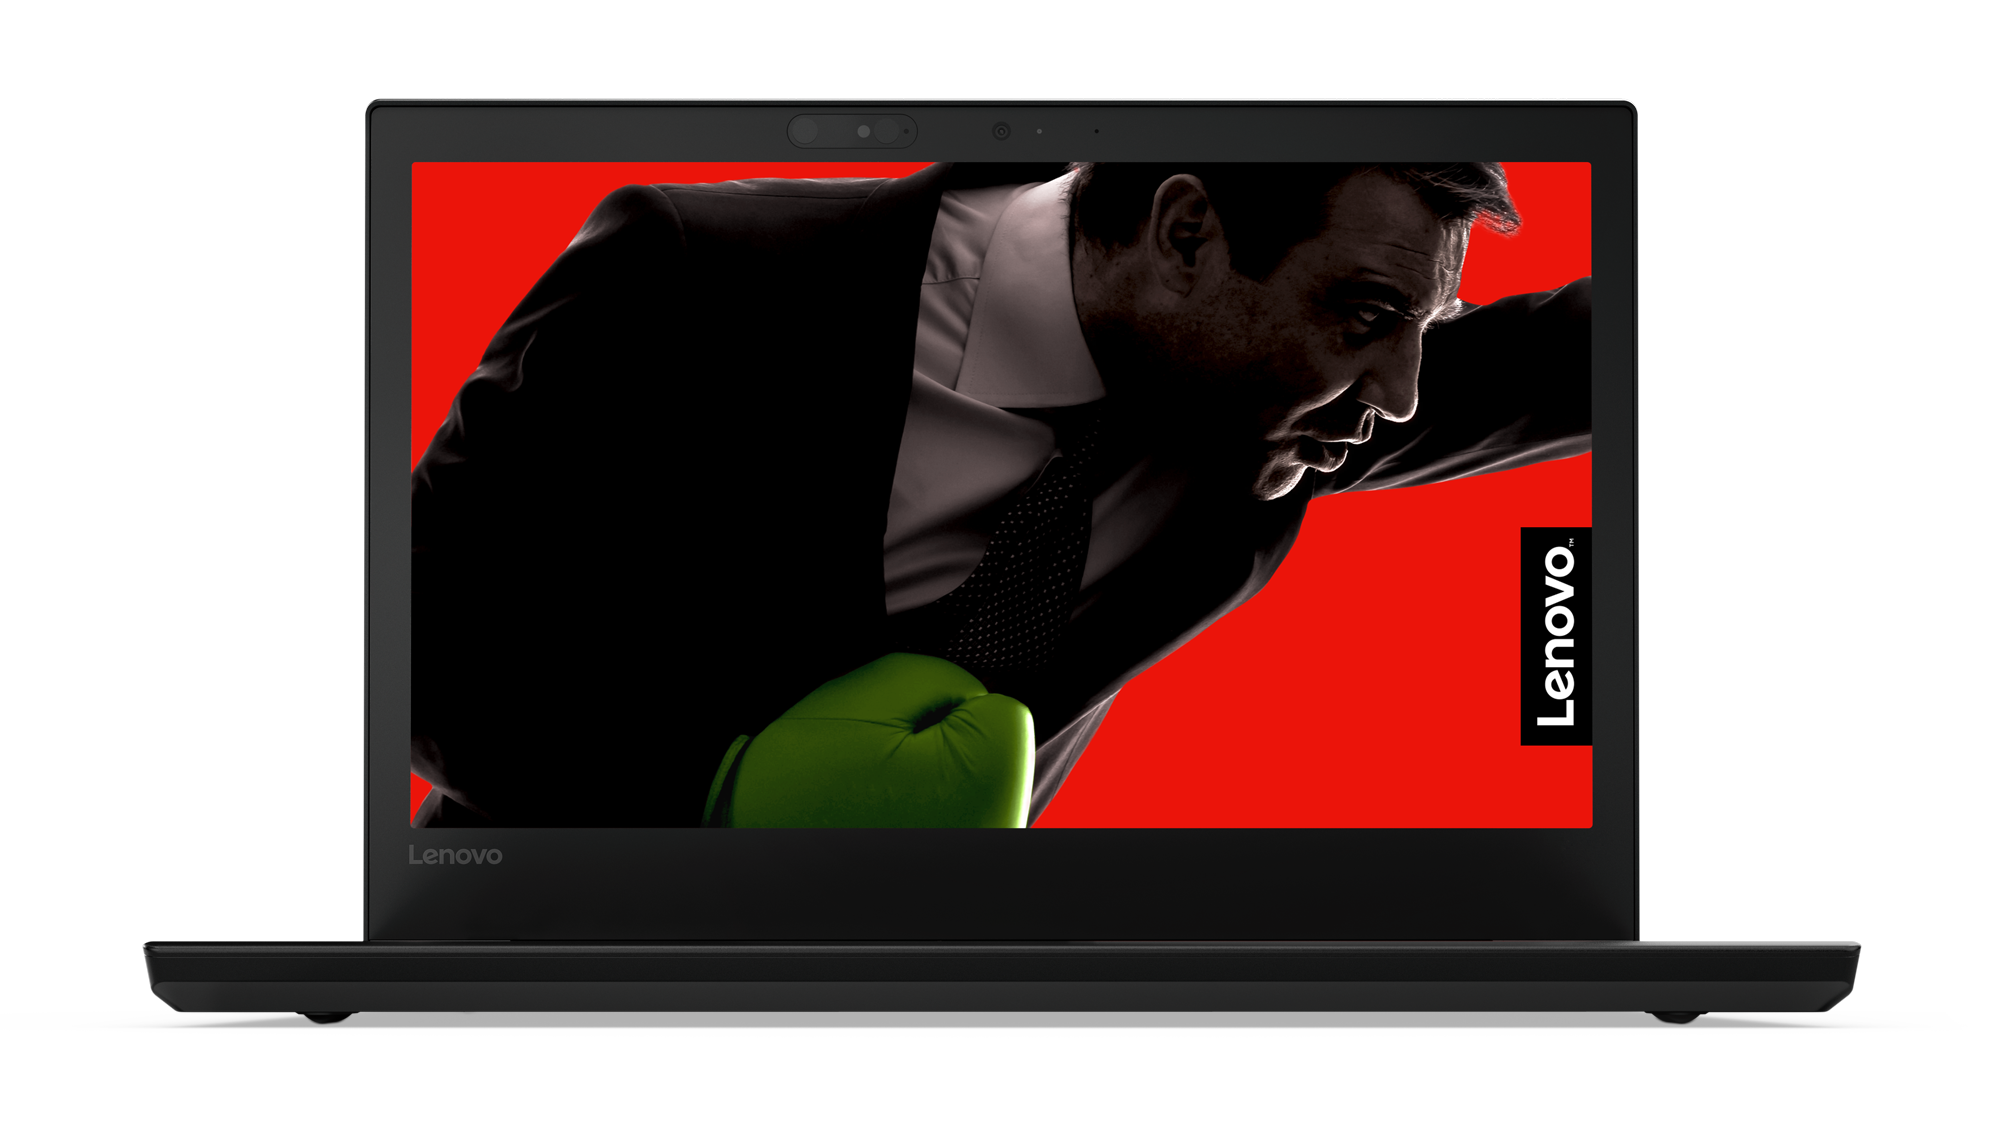 Lenovo Releases Retro ThinkPad At 25th Anniversary Celebration